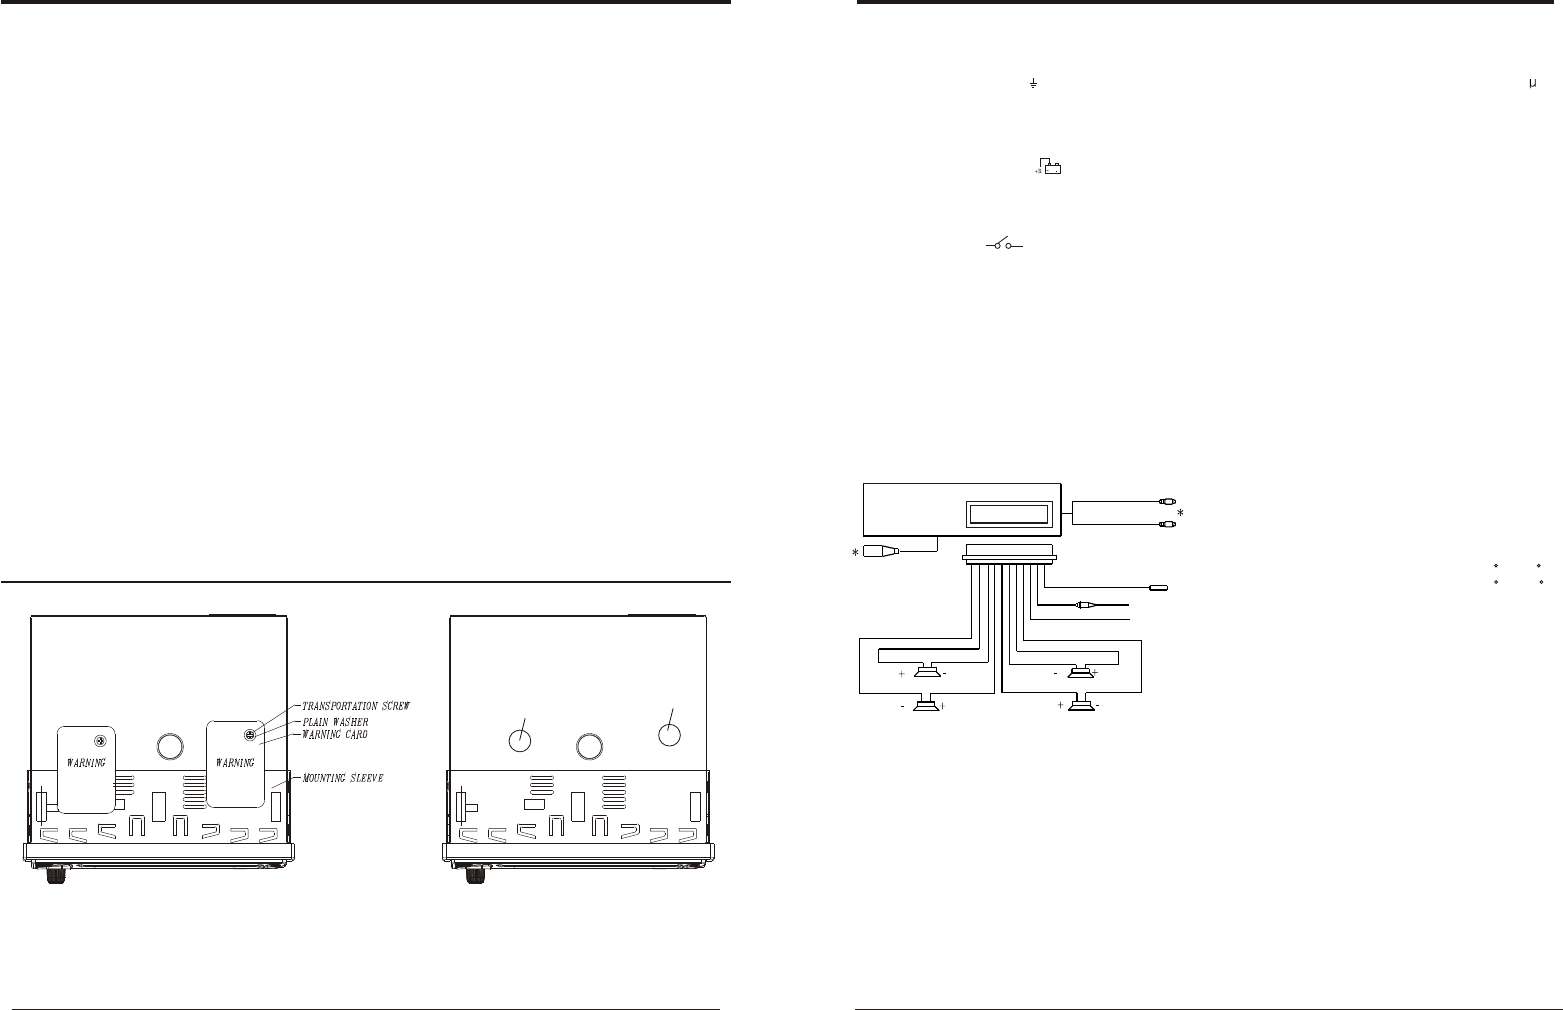 subwoofer wiring diagram sonic electronix images wiring diagram marine audio wiring diagramaudiowiring harness diagram images